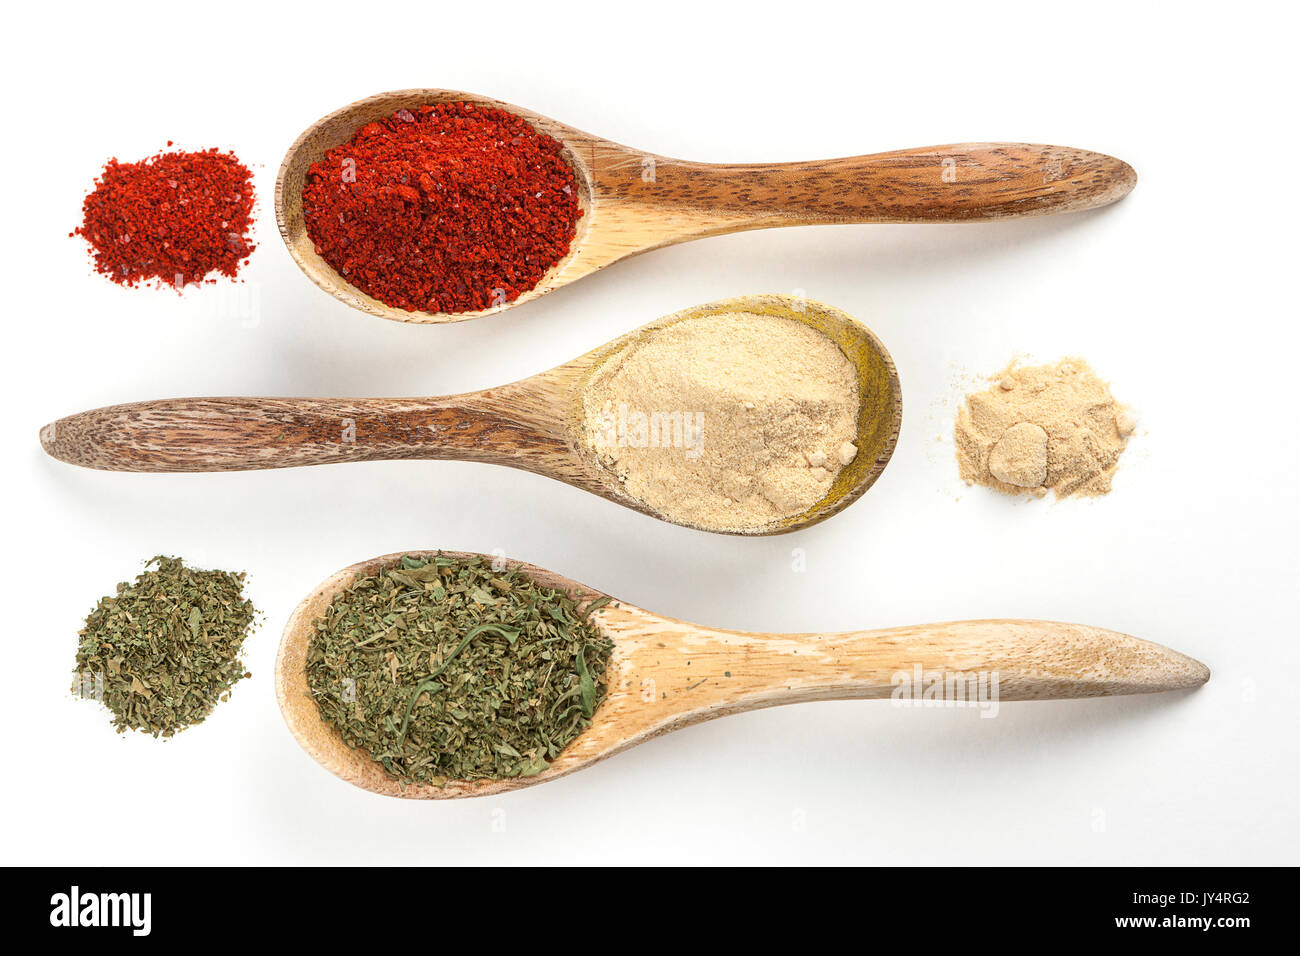 An overview of wooden spoons filled with red pepper powder, garlic powder, and basil leaves. - Stock Image